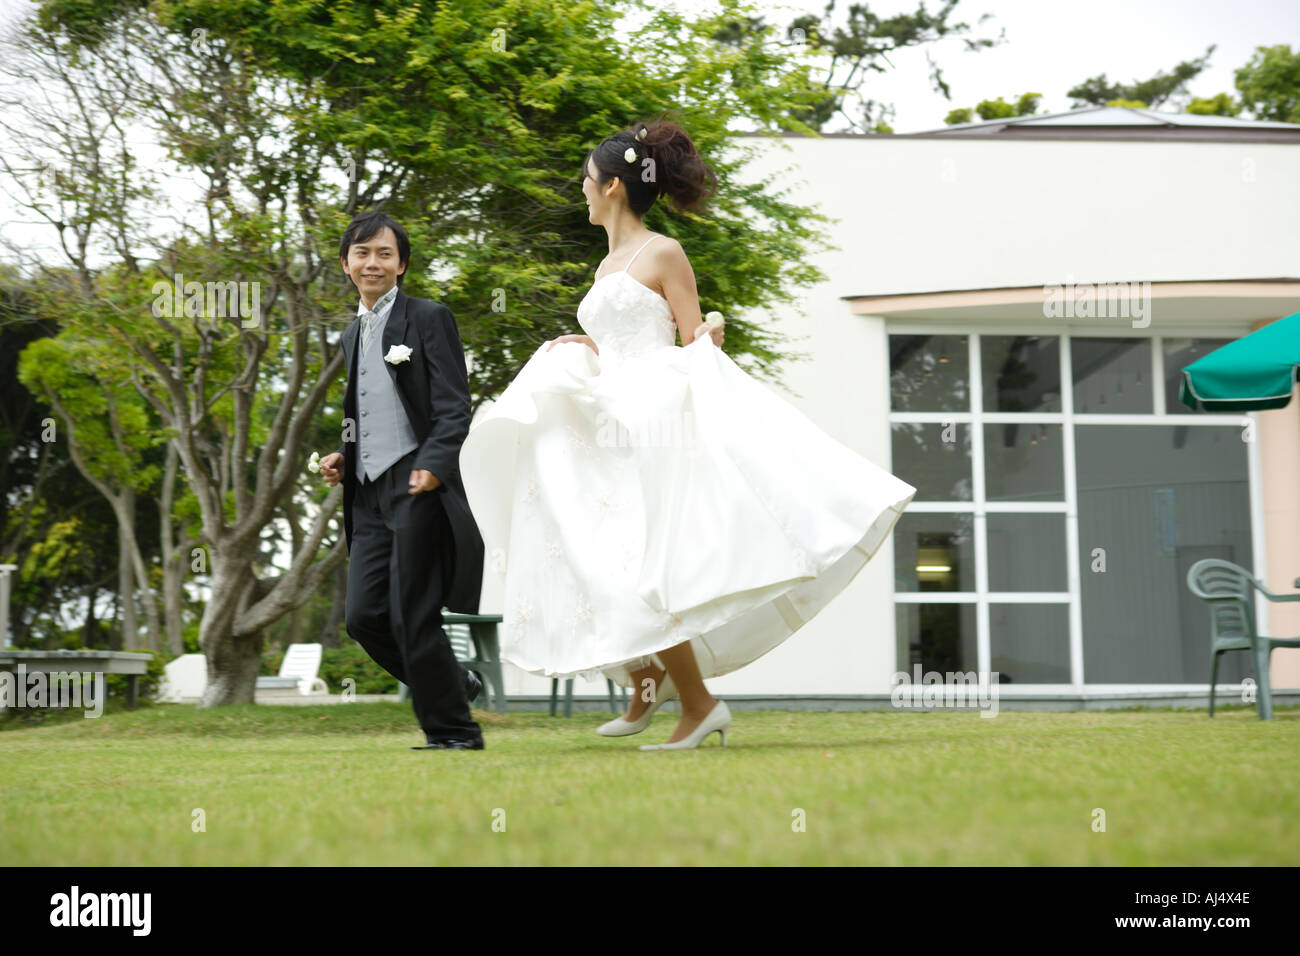 Peachy Bride And Groom Running On Lawn Stock Photo 4774477 Alamy Download Free Architecture Designs Scobabritishbridgeorg